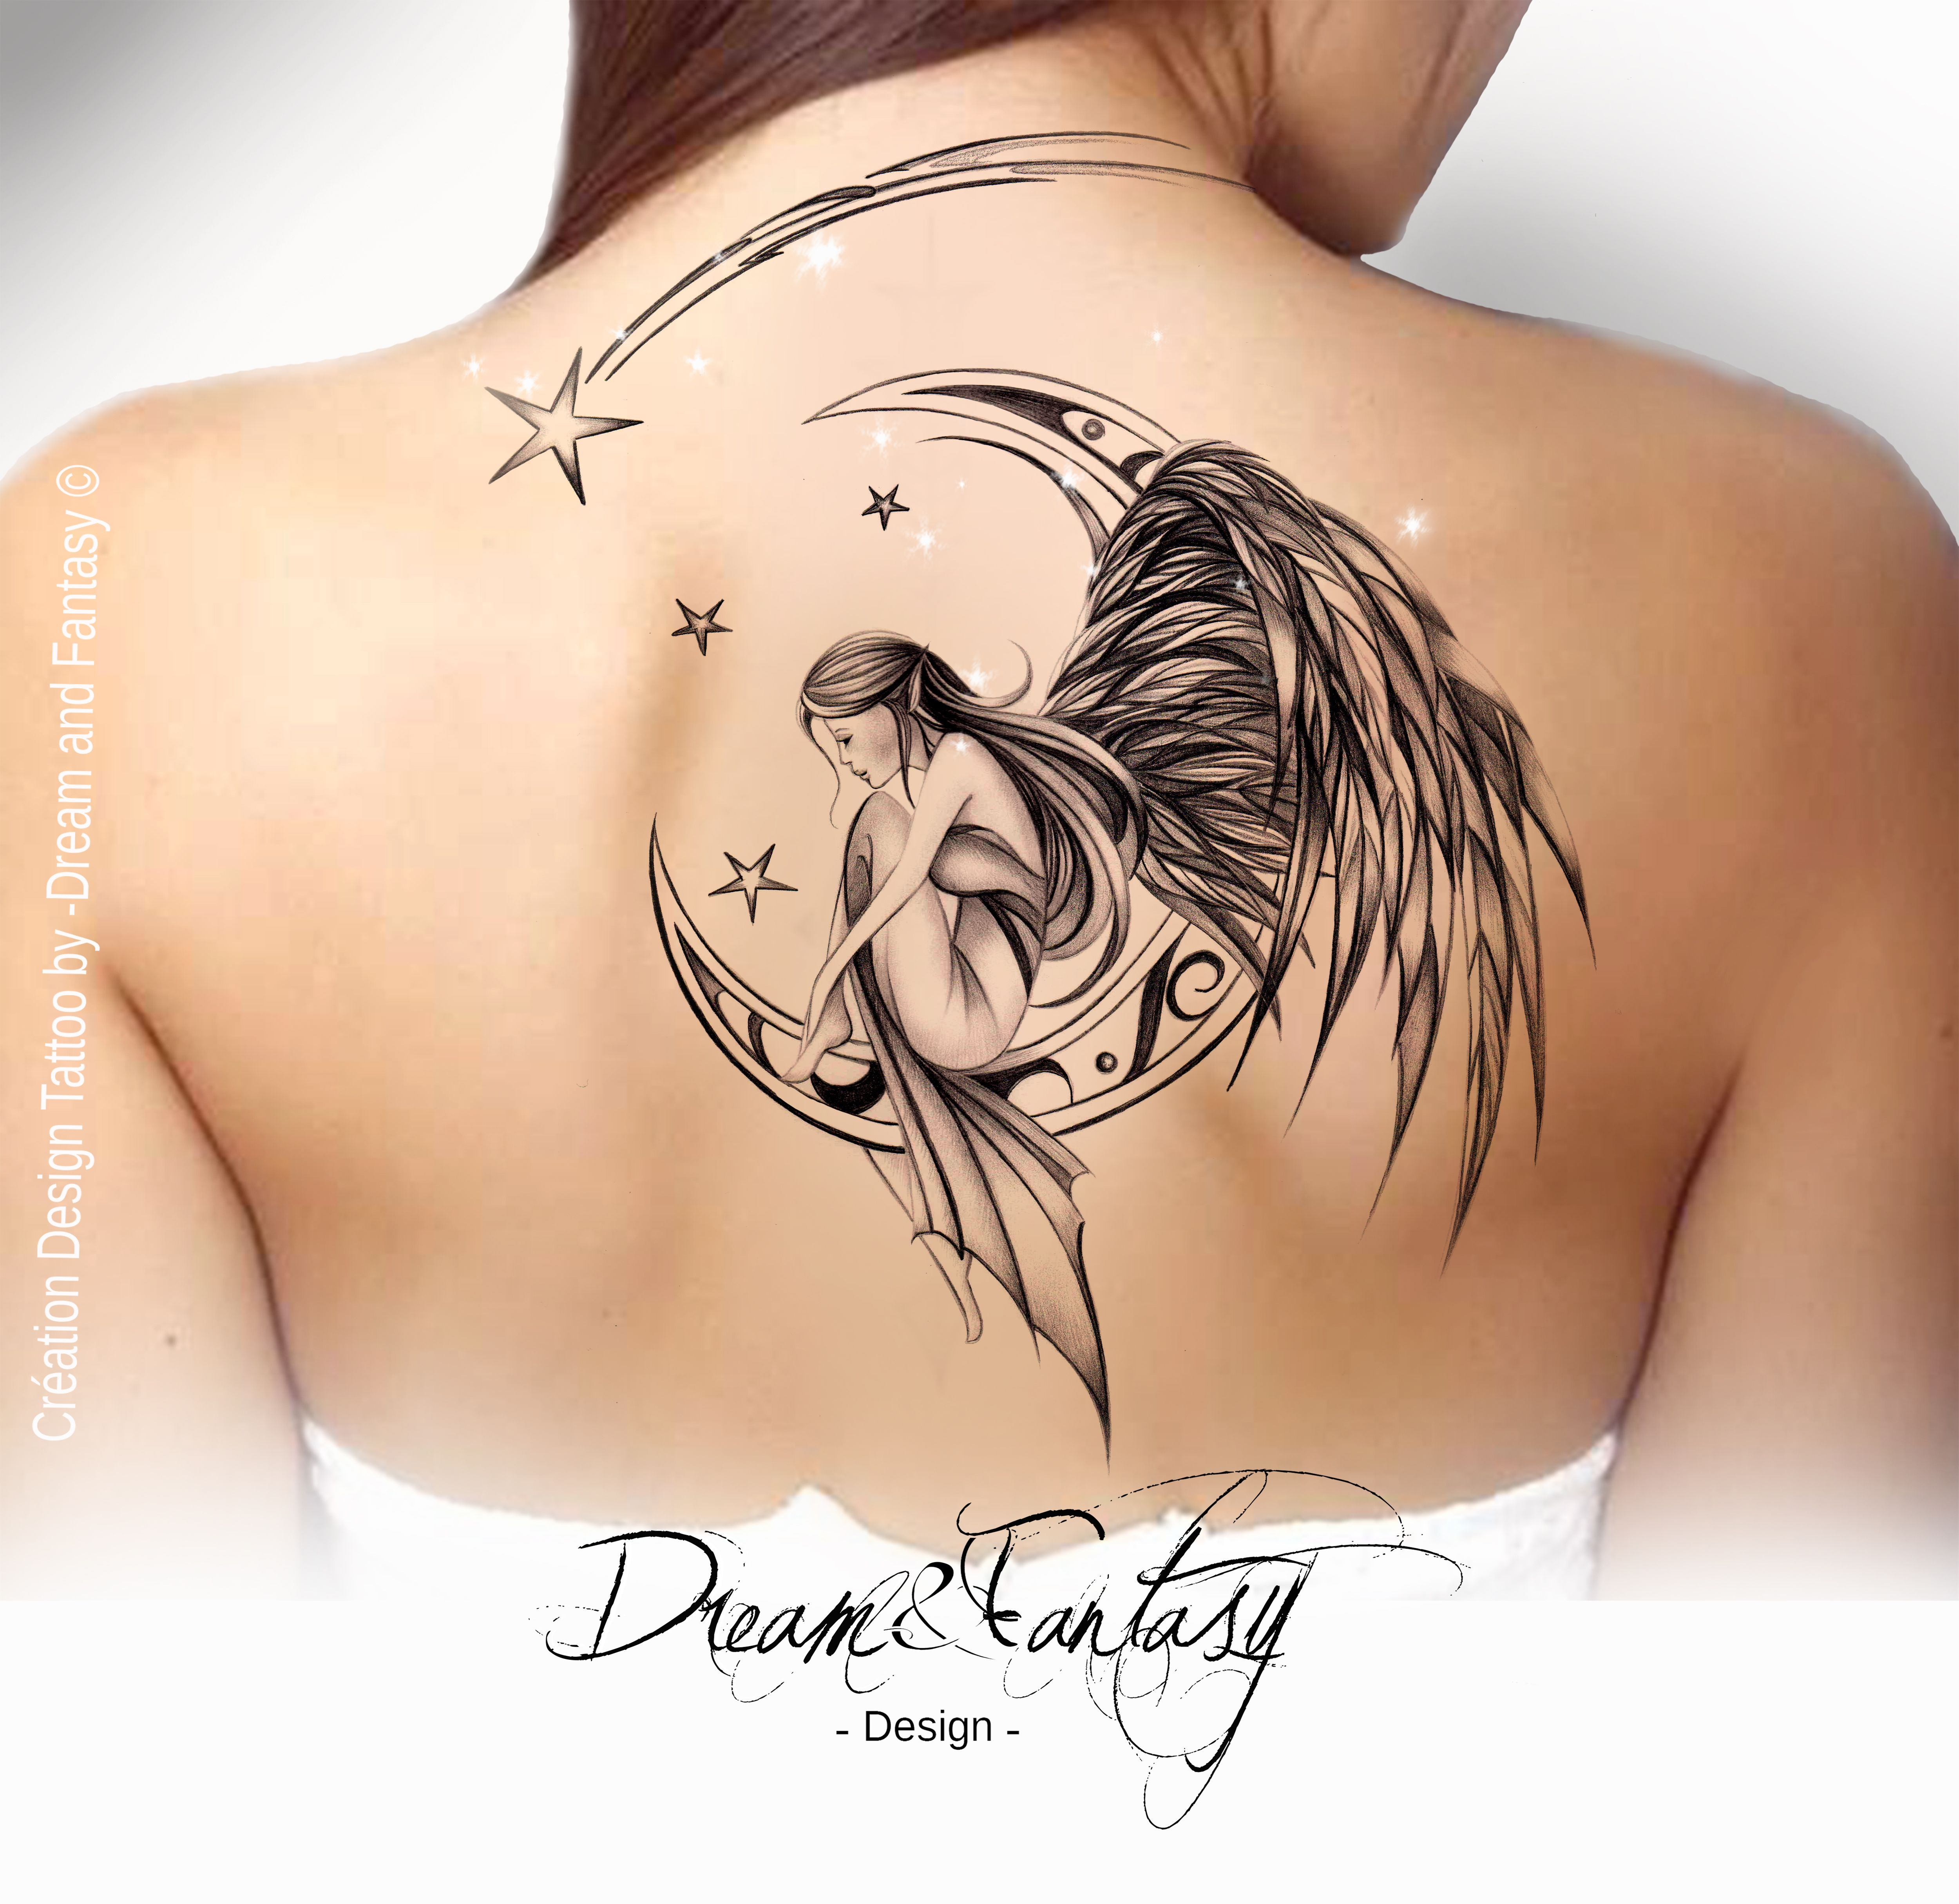 design tattoo f e ange f erie lune tattoos pinterest tattoo tatoo and tatoos. Black Bedroom Furniture Sets. Home Design Ideas